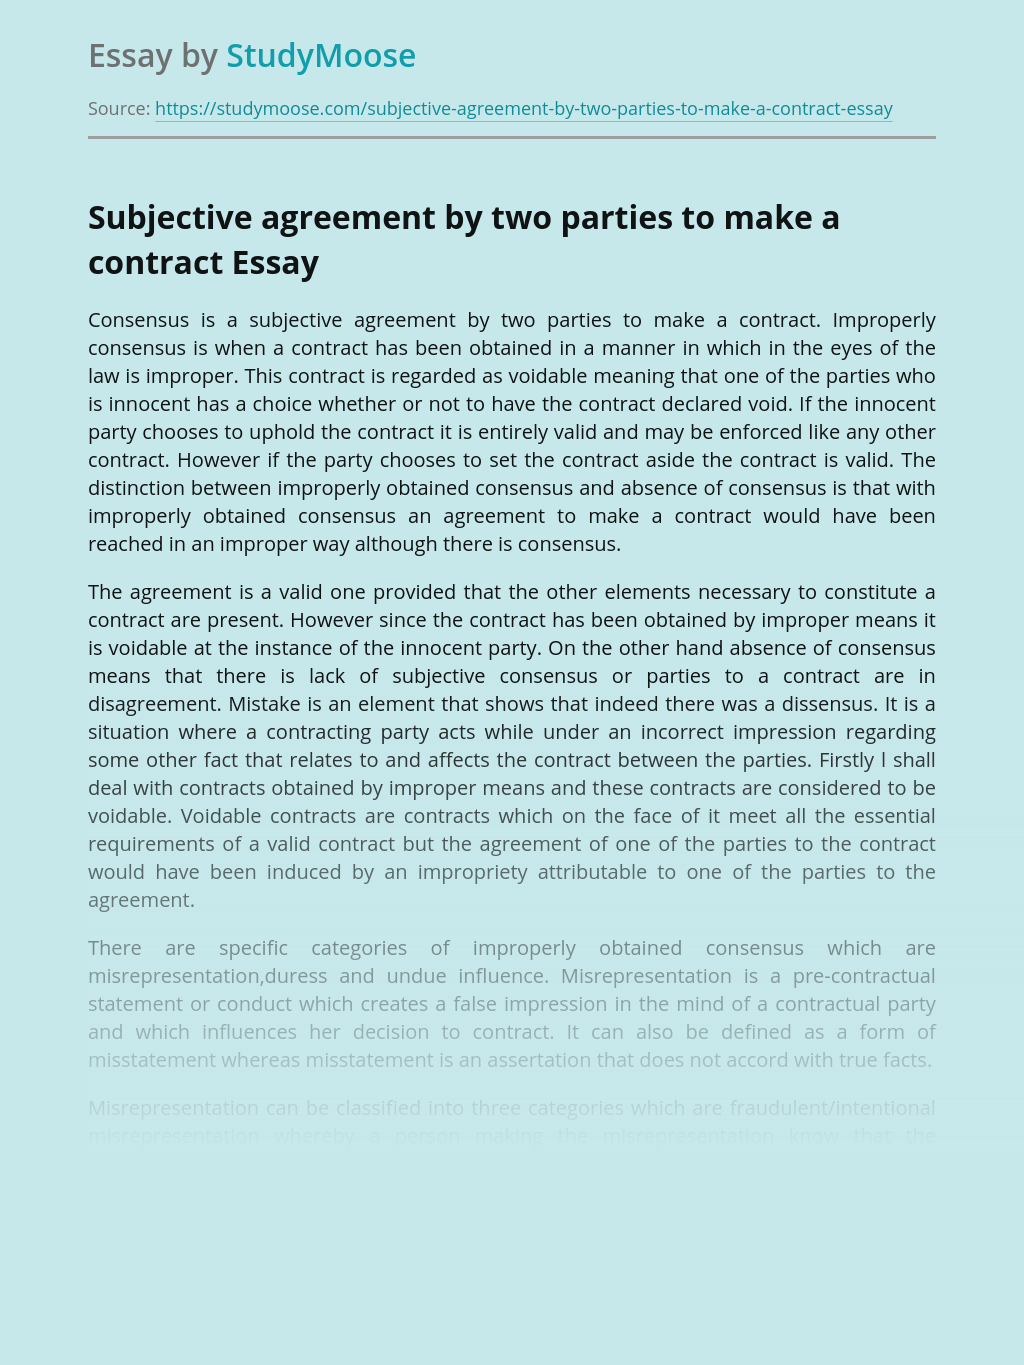 Subjective agreement by two parties to make a contract